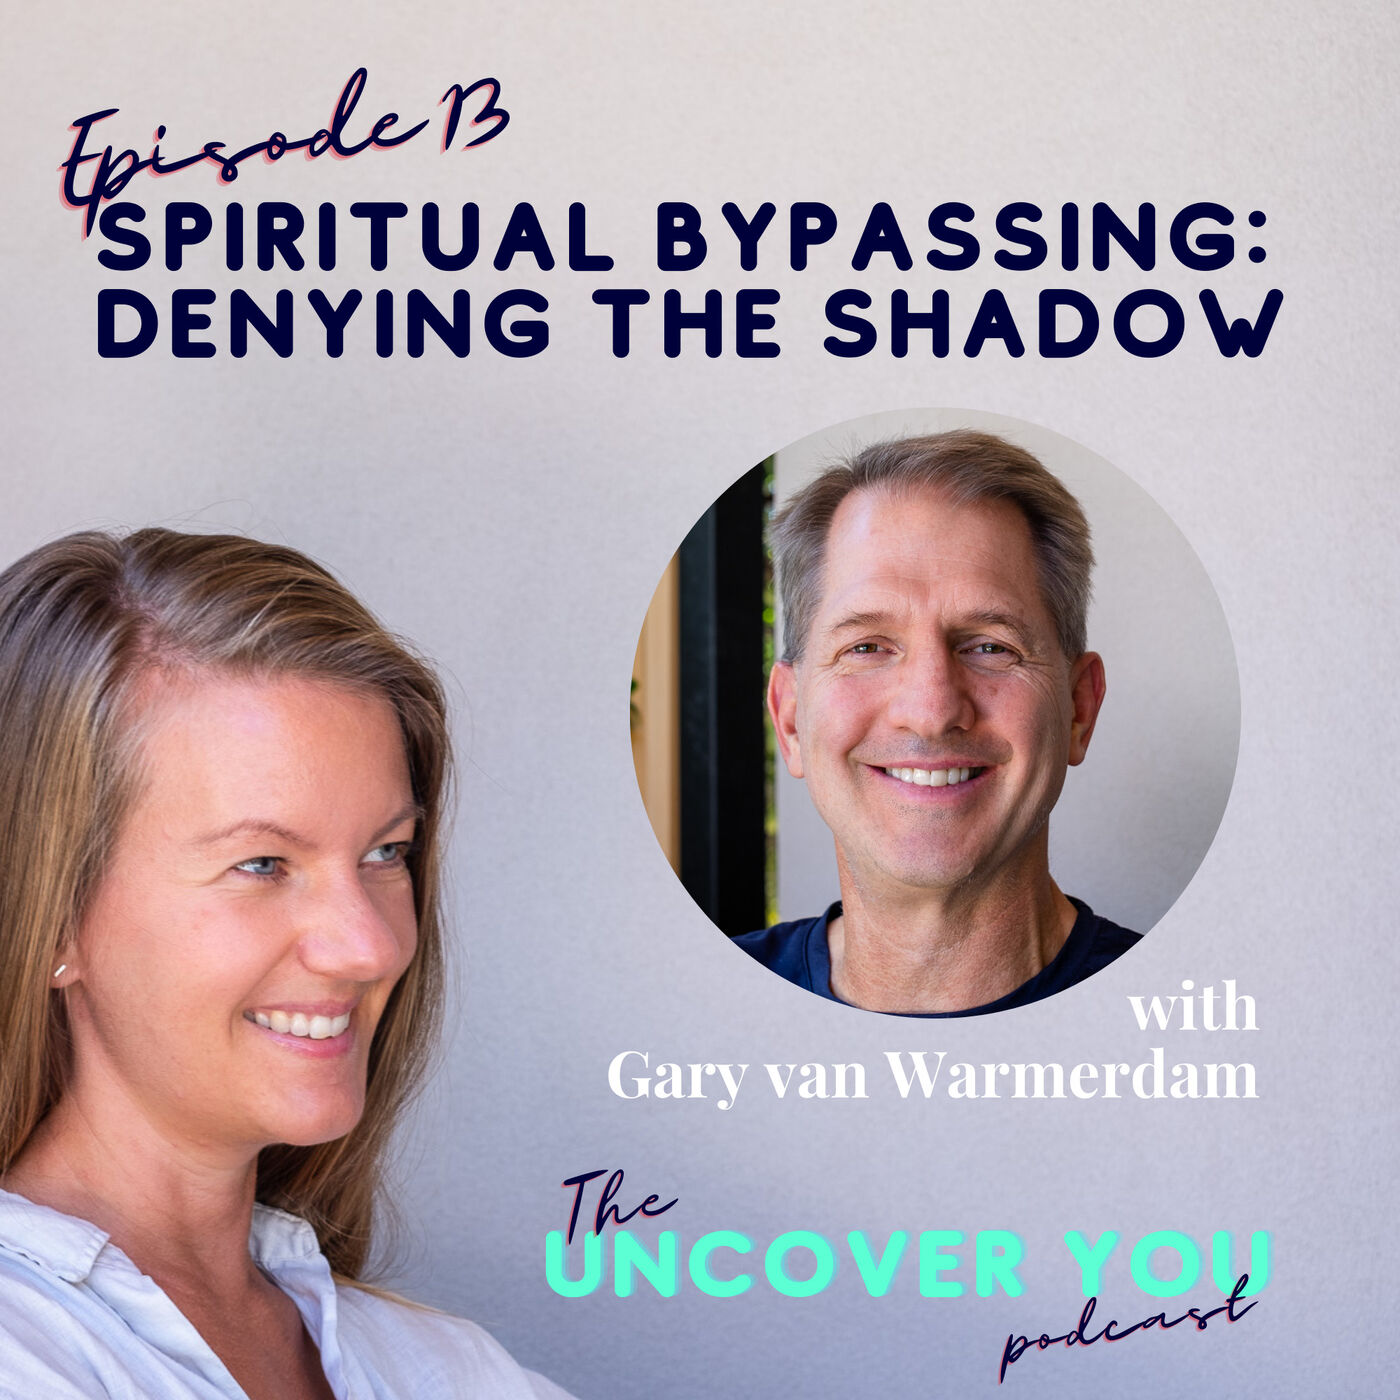 Ep 13: Spiritual Bypassing: The Spiritual Ego denying your Shadow Self